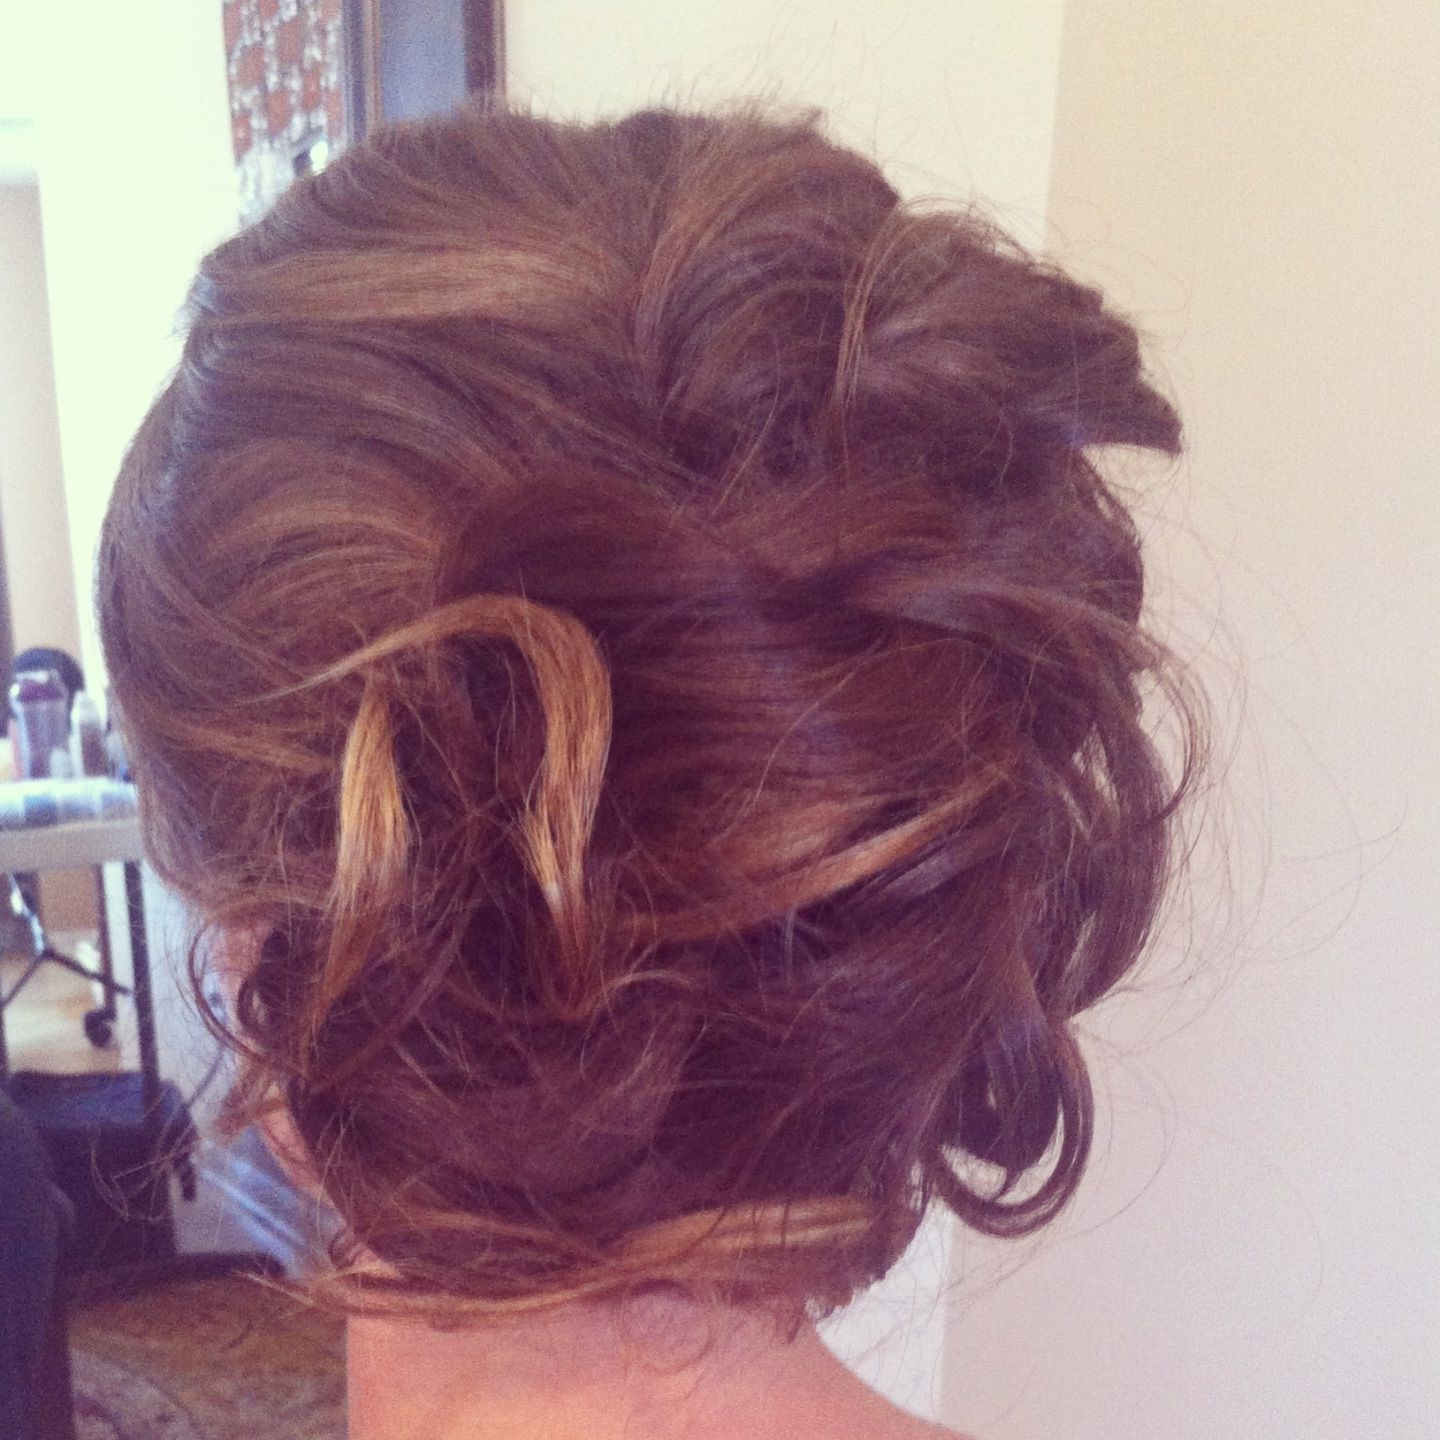 Newest Curls Clipped To The Side Bridal Hairstyles In Low Side Bun Loose Curls Pinned Up. Wedding Hair (View 8 of 20)